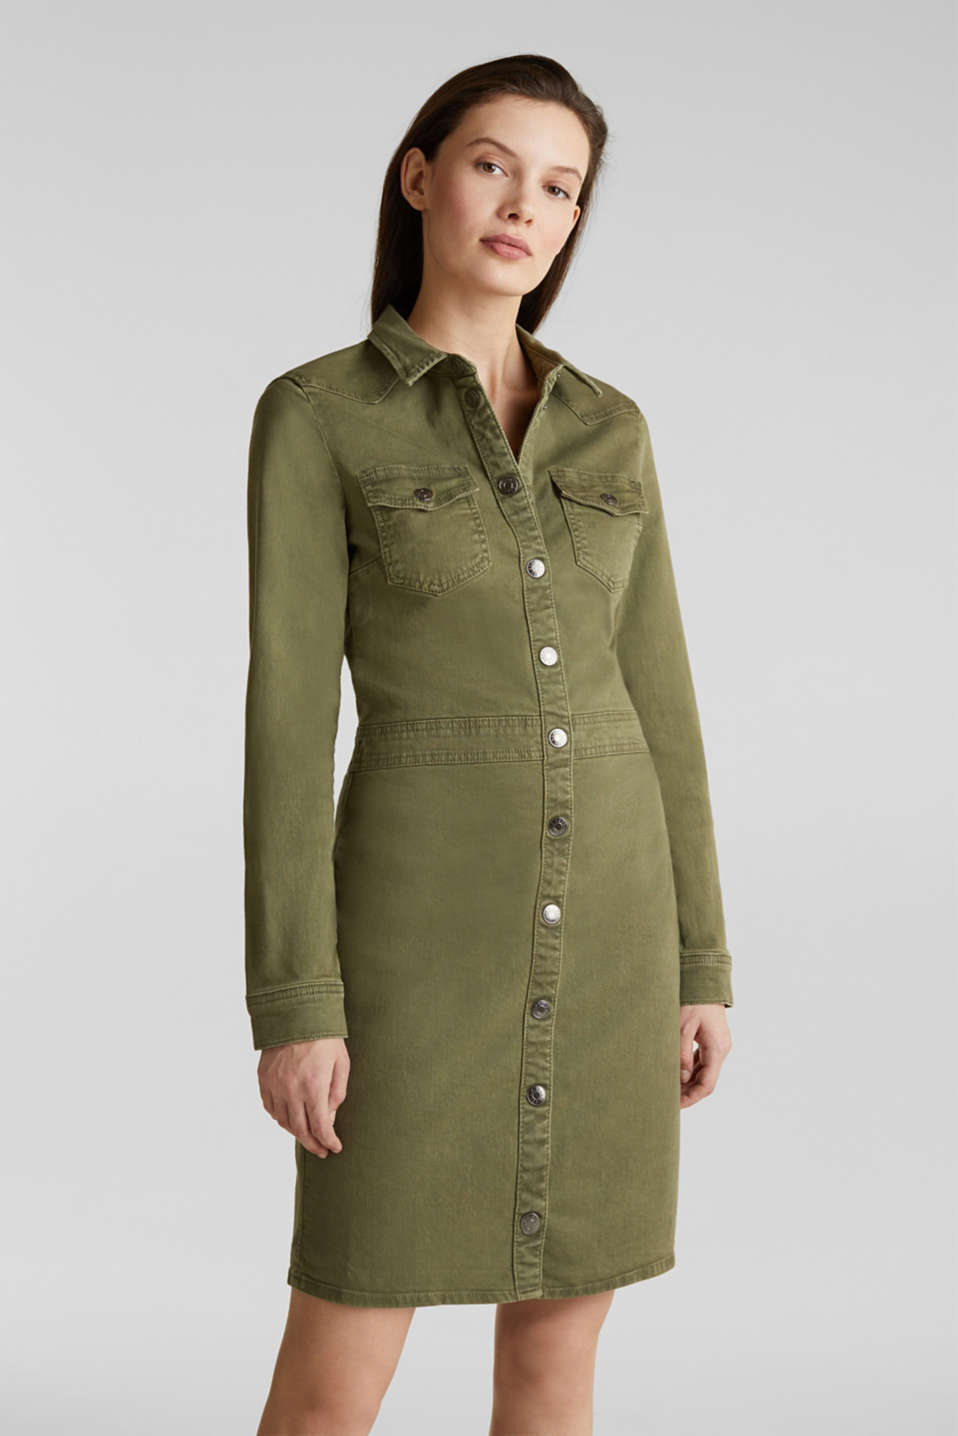 Esprit - Utility dress made of stretch cotton